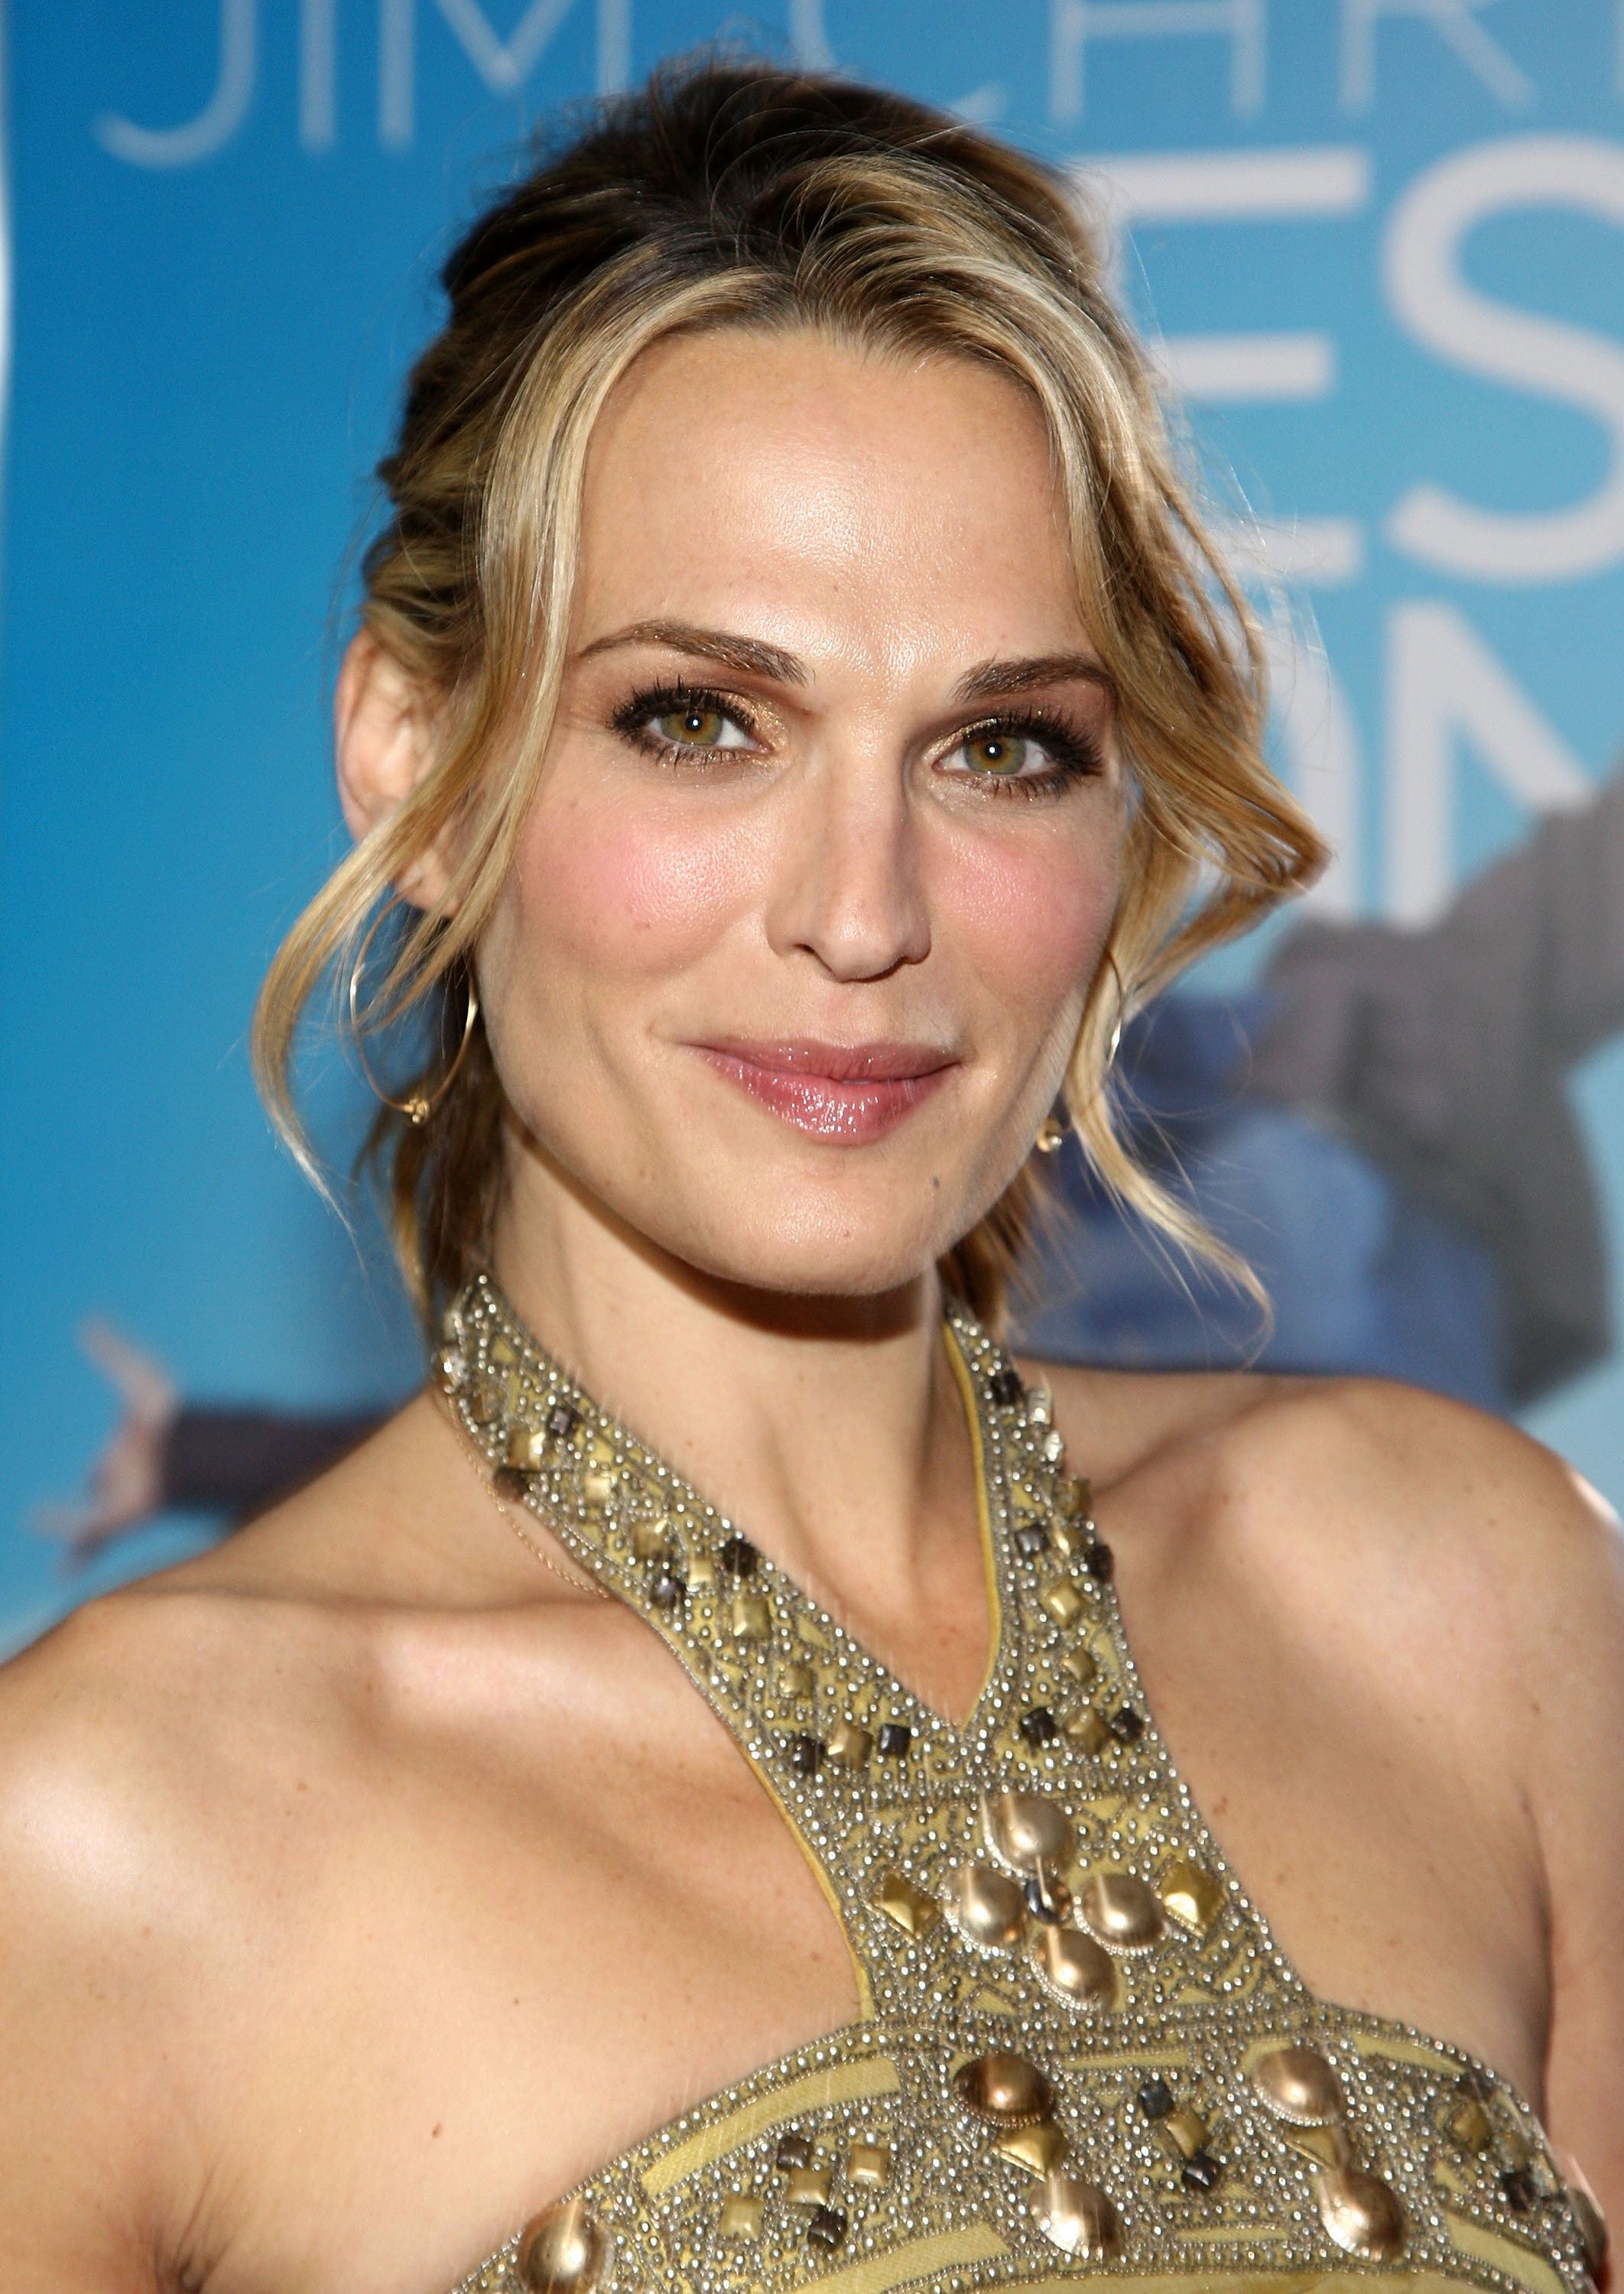 84327_Celebutopia-Molly_Sims-Yes_Man_premiere_in_Los_Angeles-01_122_870lo.jpg